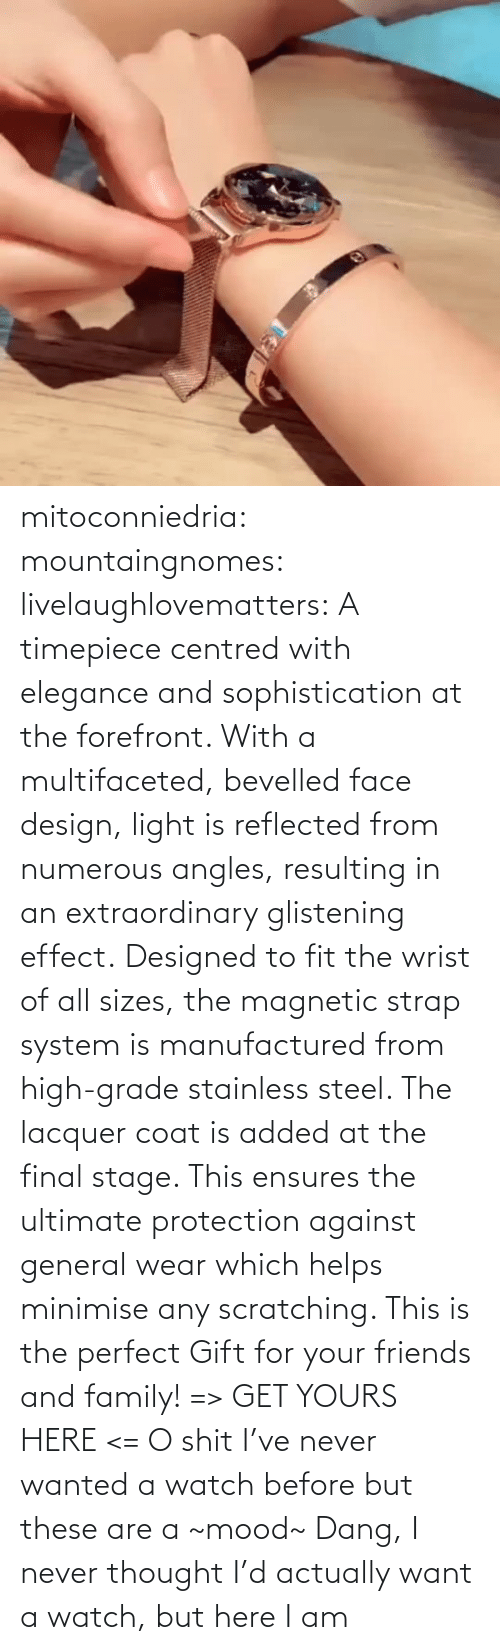 steel: mitoconniedria: mountaingnomes:   livelaughlovematters:  A timepiece centred with elegance and sophistication at the forefront. With a multifaceted, bevelled face design, light is reflected from numerous angles, resulting in an extraordinary glistening effect. Designed to fit the wrist of all sizes, the magnetic strap system is manufactured from high-grade stainless steel. The lacquer coat is added at the final stage. This ensures the ultimate protection against general wear which helps minimise any scratching. This is the perfect Gift for your friends and family! => GET YOURS HERE <=  O shit I've never wanted a watch before but these are a ~mood~    Dang, I never thought I'd actually want a watch, but here I am